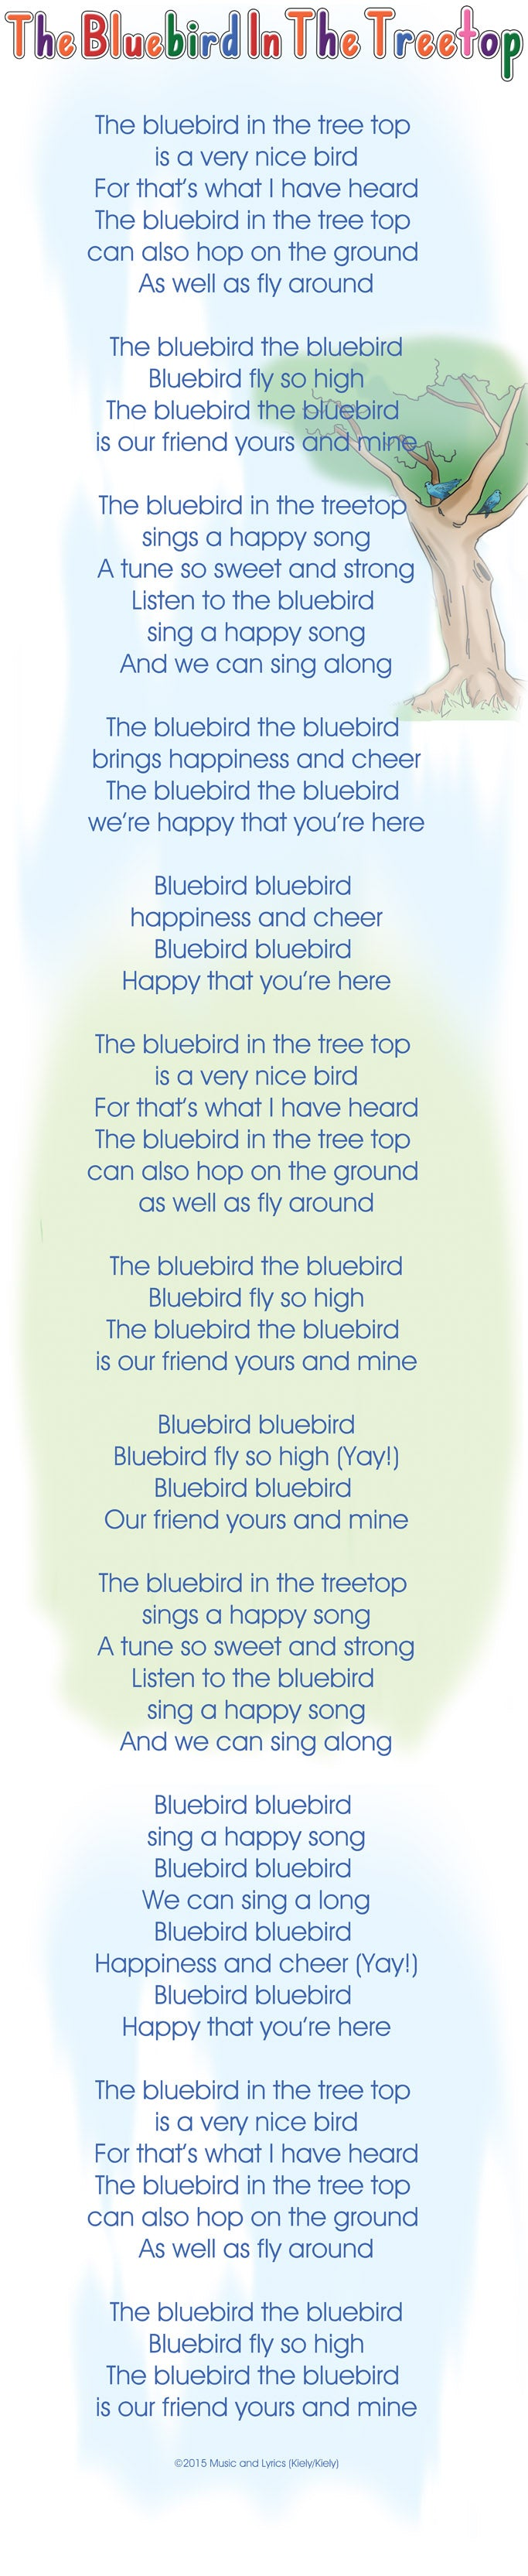 The bluebird in the tree top  is a very nice bird For that's what I have heard The bluebird in the tree top  can also hop on the ground  As well as fly around  The bluebird the bluebird Bluebird fly so high The bluebird the bluebird  is our friend yours and mine  The bluebird in the treetop  sings a happy song A tune so sweet and strong Listen to the bluebird  sing a happy song And we can sing along  The bluebird the bluebird  brings happiness and cheer The bluebird the bluebird  we're happy that you're here  Bluebird bluebird  happiness and cheer Bluebird bluebird  Happy that you're here  The bluebird in the tree top  is a very nice bird For that's what I have heard The bluebird in the tree top  can also hop on the ground  as well as fly around  The bluebird the bluebird Bluebird fly so high The bluebird the bluebird  is our friend yours and mine  Bluebird bluebird Bluebird fly so high (Yay!) Bluebird bluebird  Our friend yours and mine  The bluebird in the treetop  sings a happy song A tune so sweet and strong Listen to the bluebird  sing a happy song And we can sing along  Bluebird bluebird  sing a happy song Bluebird bluebird  We can sing a long Bluebird bluebird  Happiness and cheer (Yay!) Bluebird bluebird  Happy that you're here  The bluebird in the tree top  is a very nice bird For that's what I have heard The bluebird in the tree top  can also hop on the ground  As well as fly around  The bluebird the bluebird Bluebird fly so high The bluebird the bluebird  is our friend yours and mine